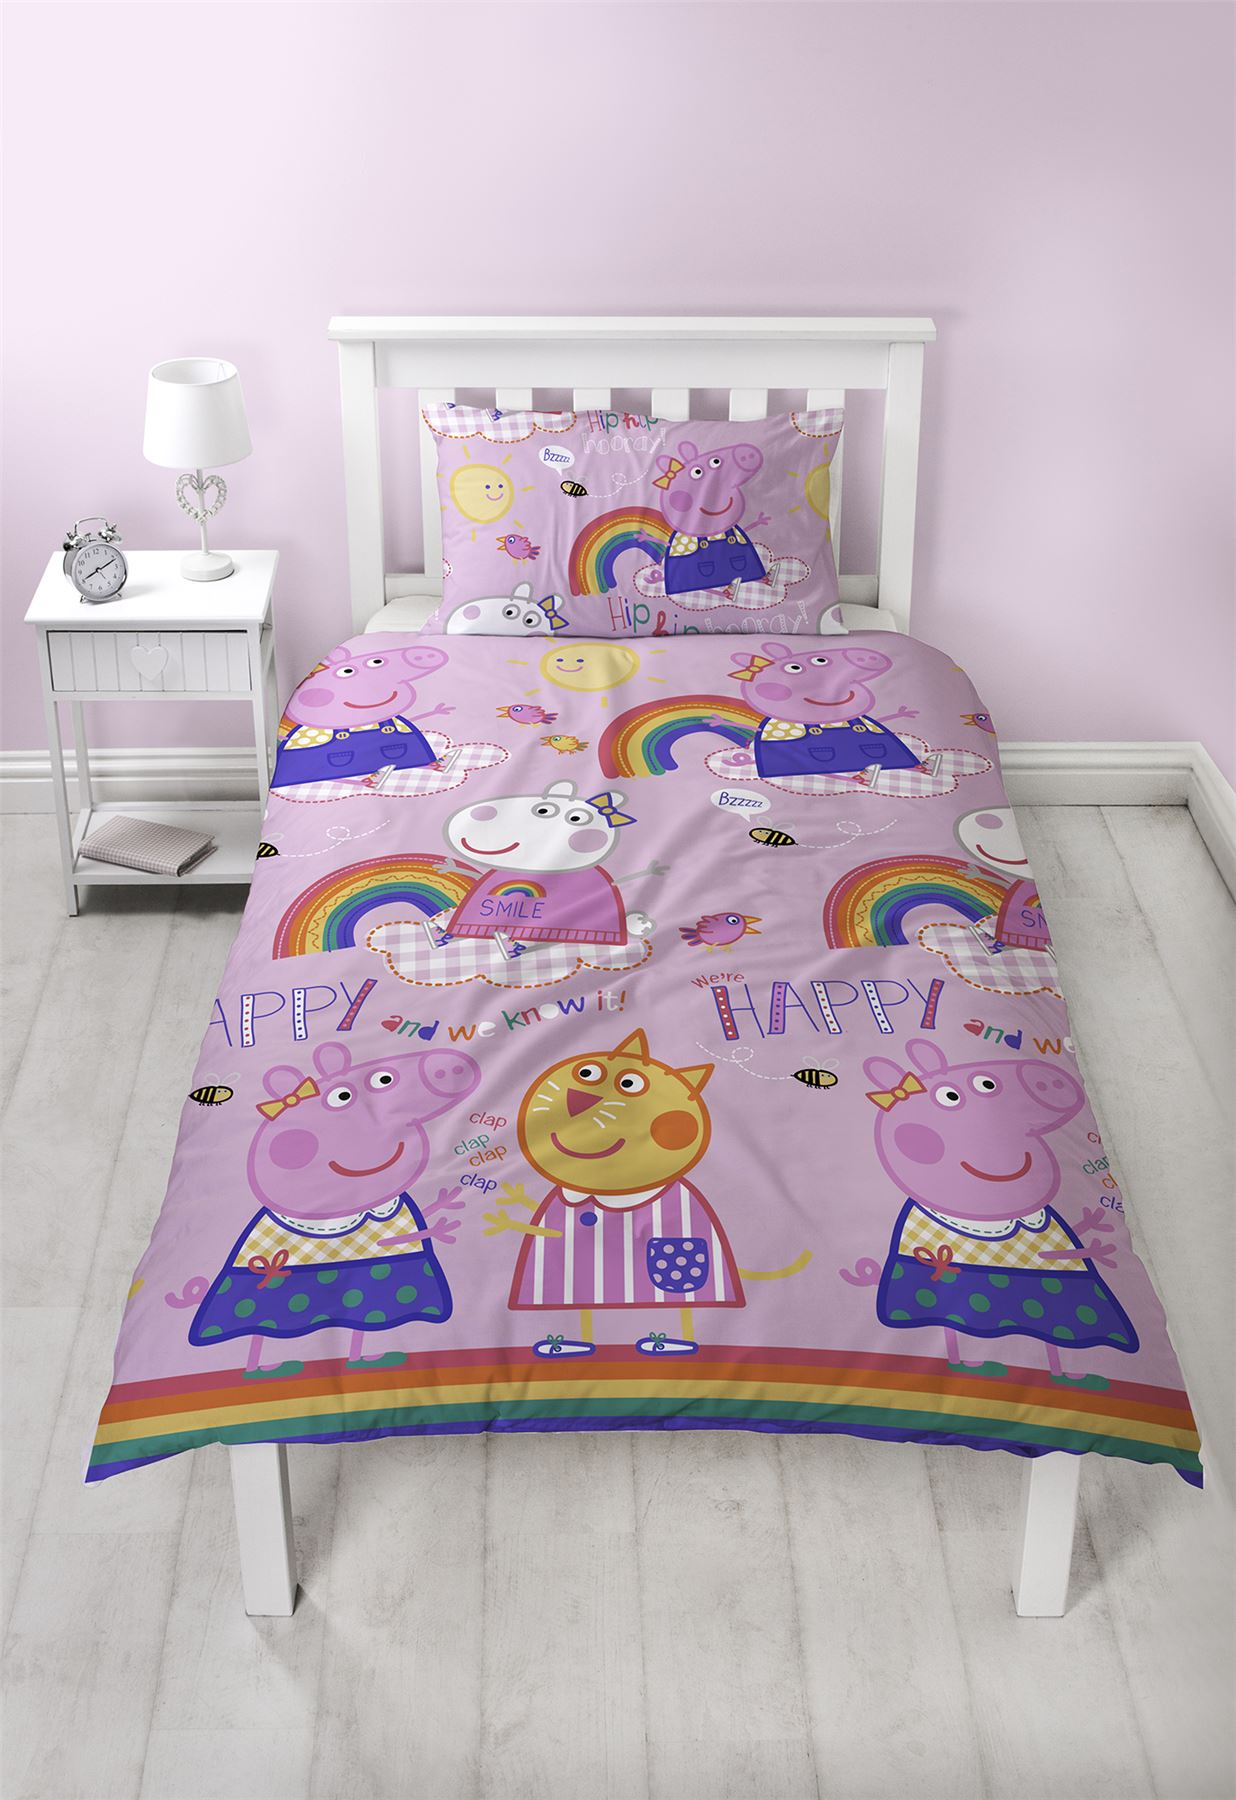 Oficial-Peppa-Pig-George-fundas-nordicas-SINGLE-doble-Ropa-De-Cama-Reversible miniatura 11